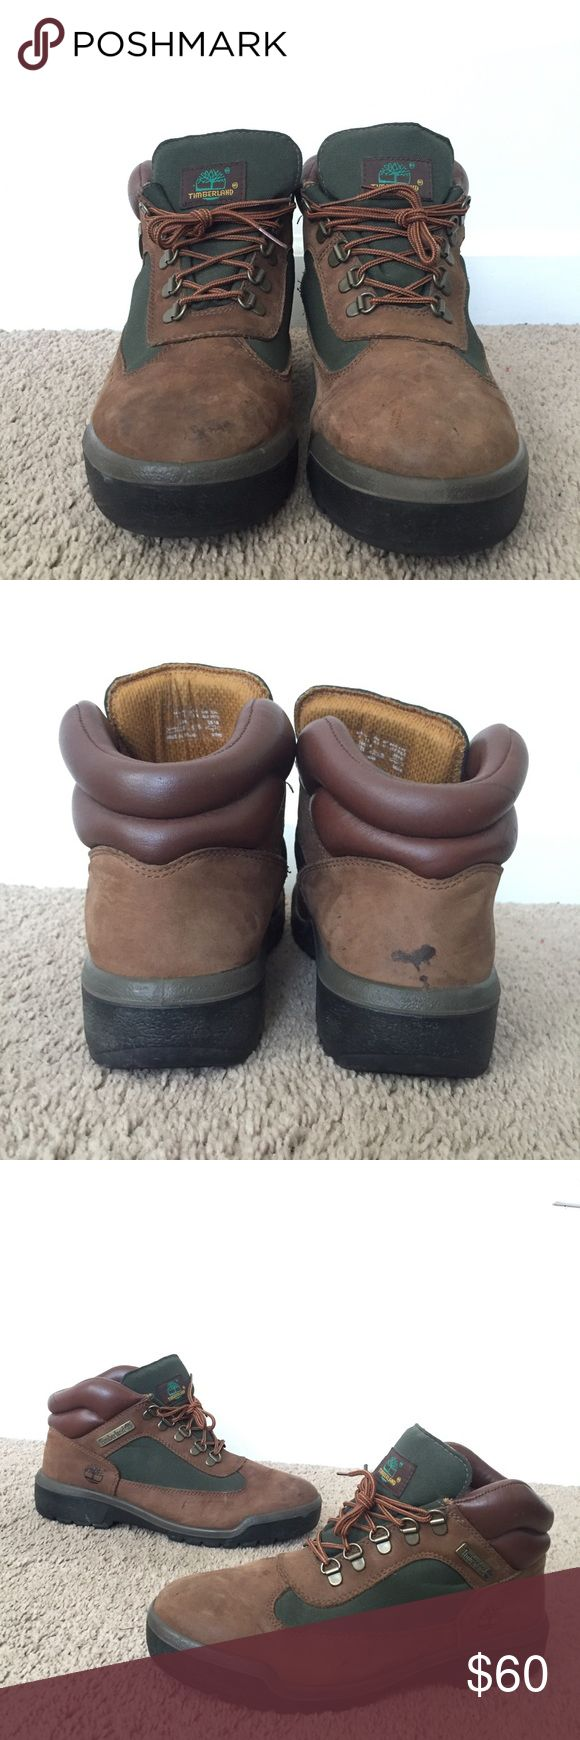 Timberlands - beef n broccoli - low In good shape. Give them a 7/10. Spot on back right foot can be removed with proper cleaning. Both boots have slight creases. I DO NOT HAVE ITS ORIGINAL BOX. Timberland Shoes Boots